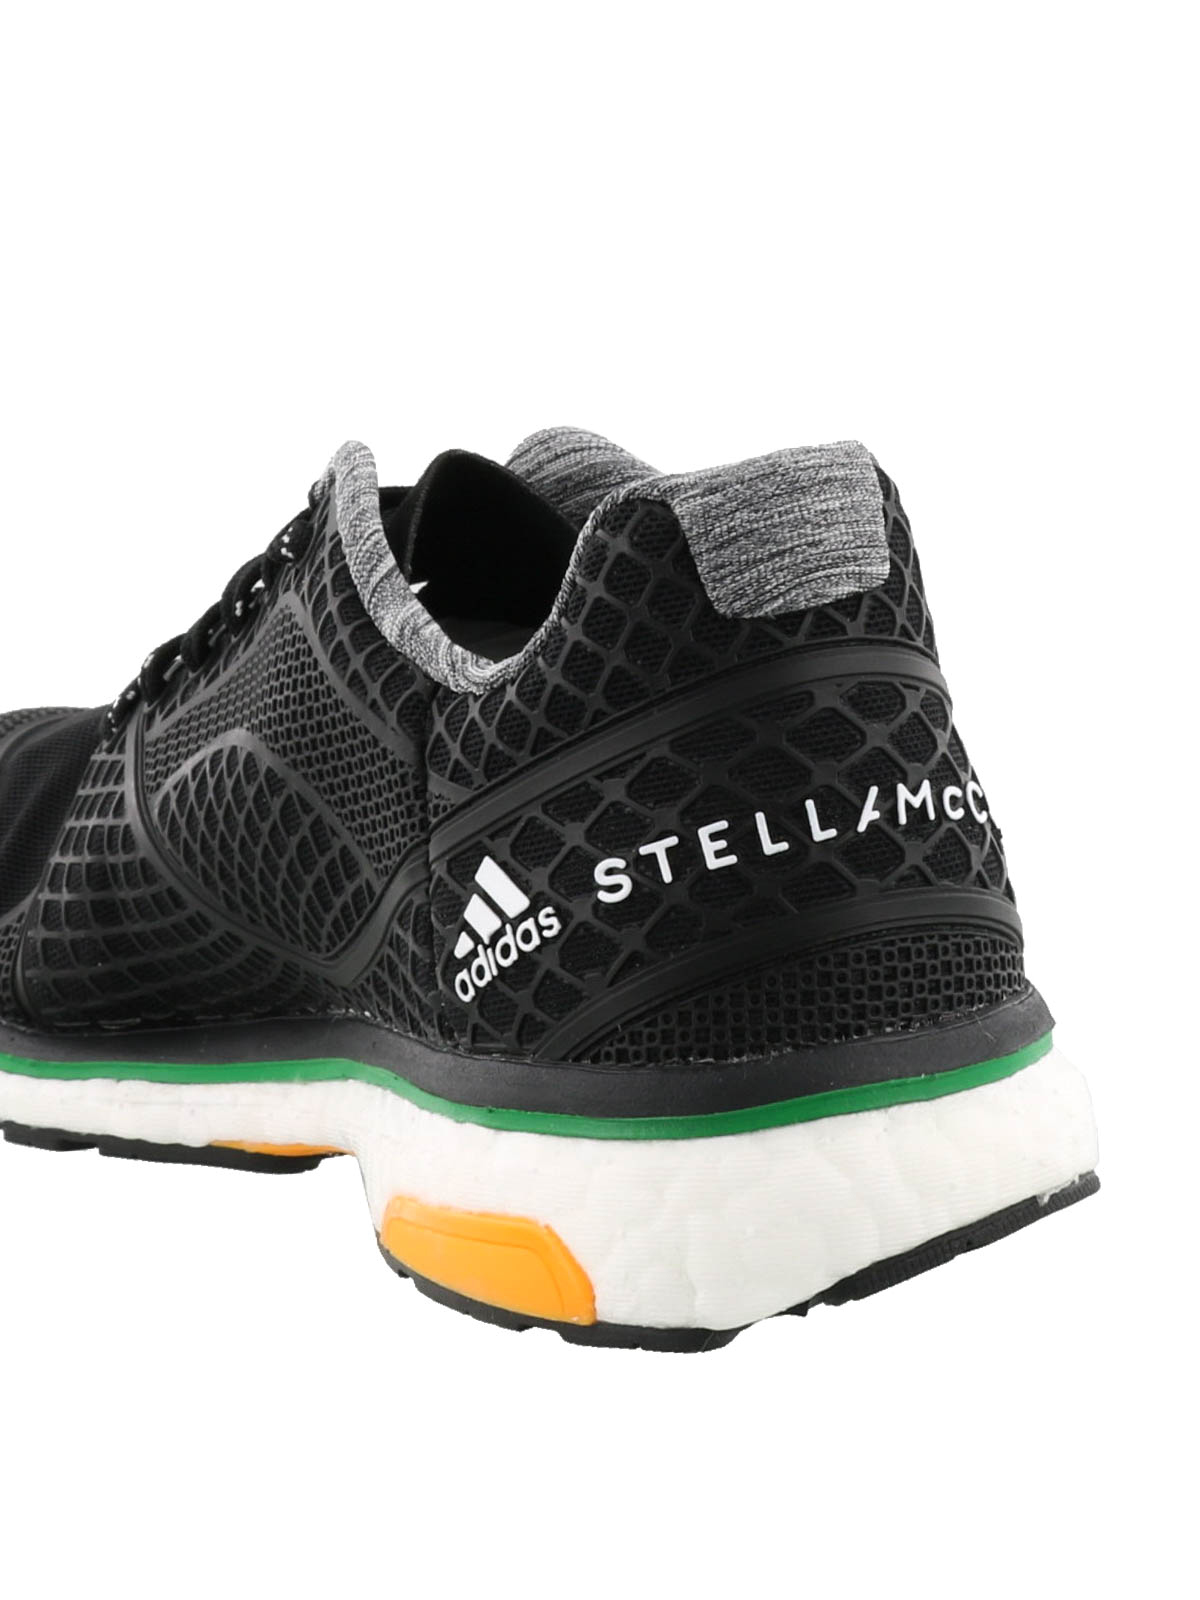 8c5633229ac41 Adidas by Stella McCartney - Zapatillas - Adizero Adios - Zapatillas ...